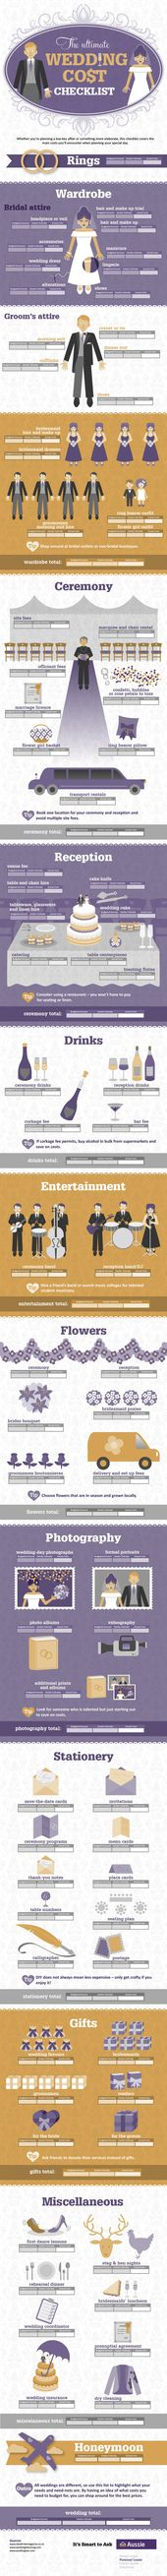 The Ultimate Wedding Cost Checklist Infographic Pinterest Top 10